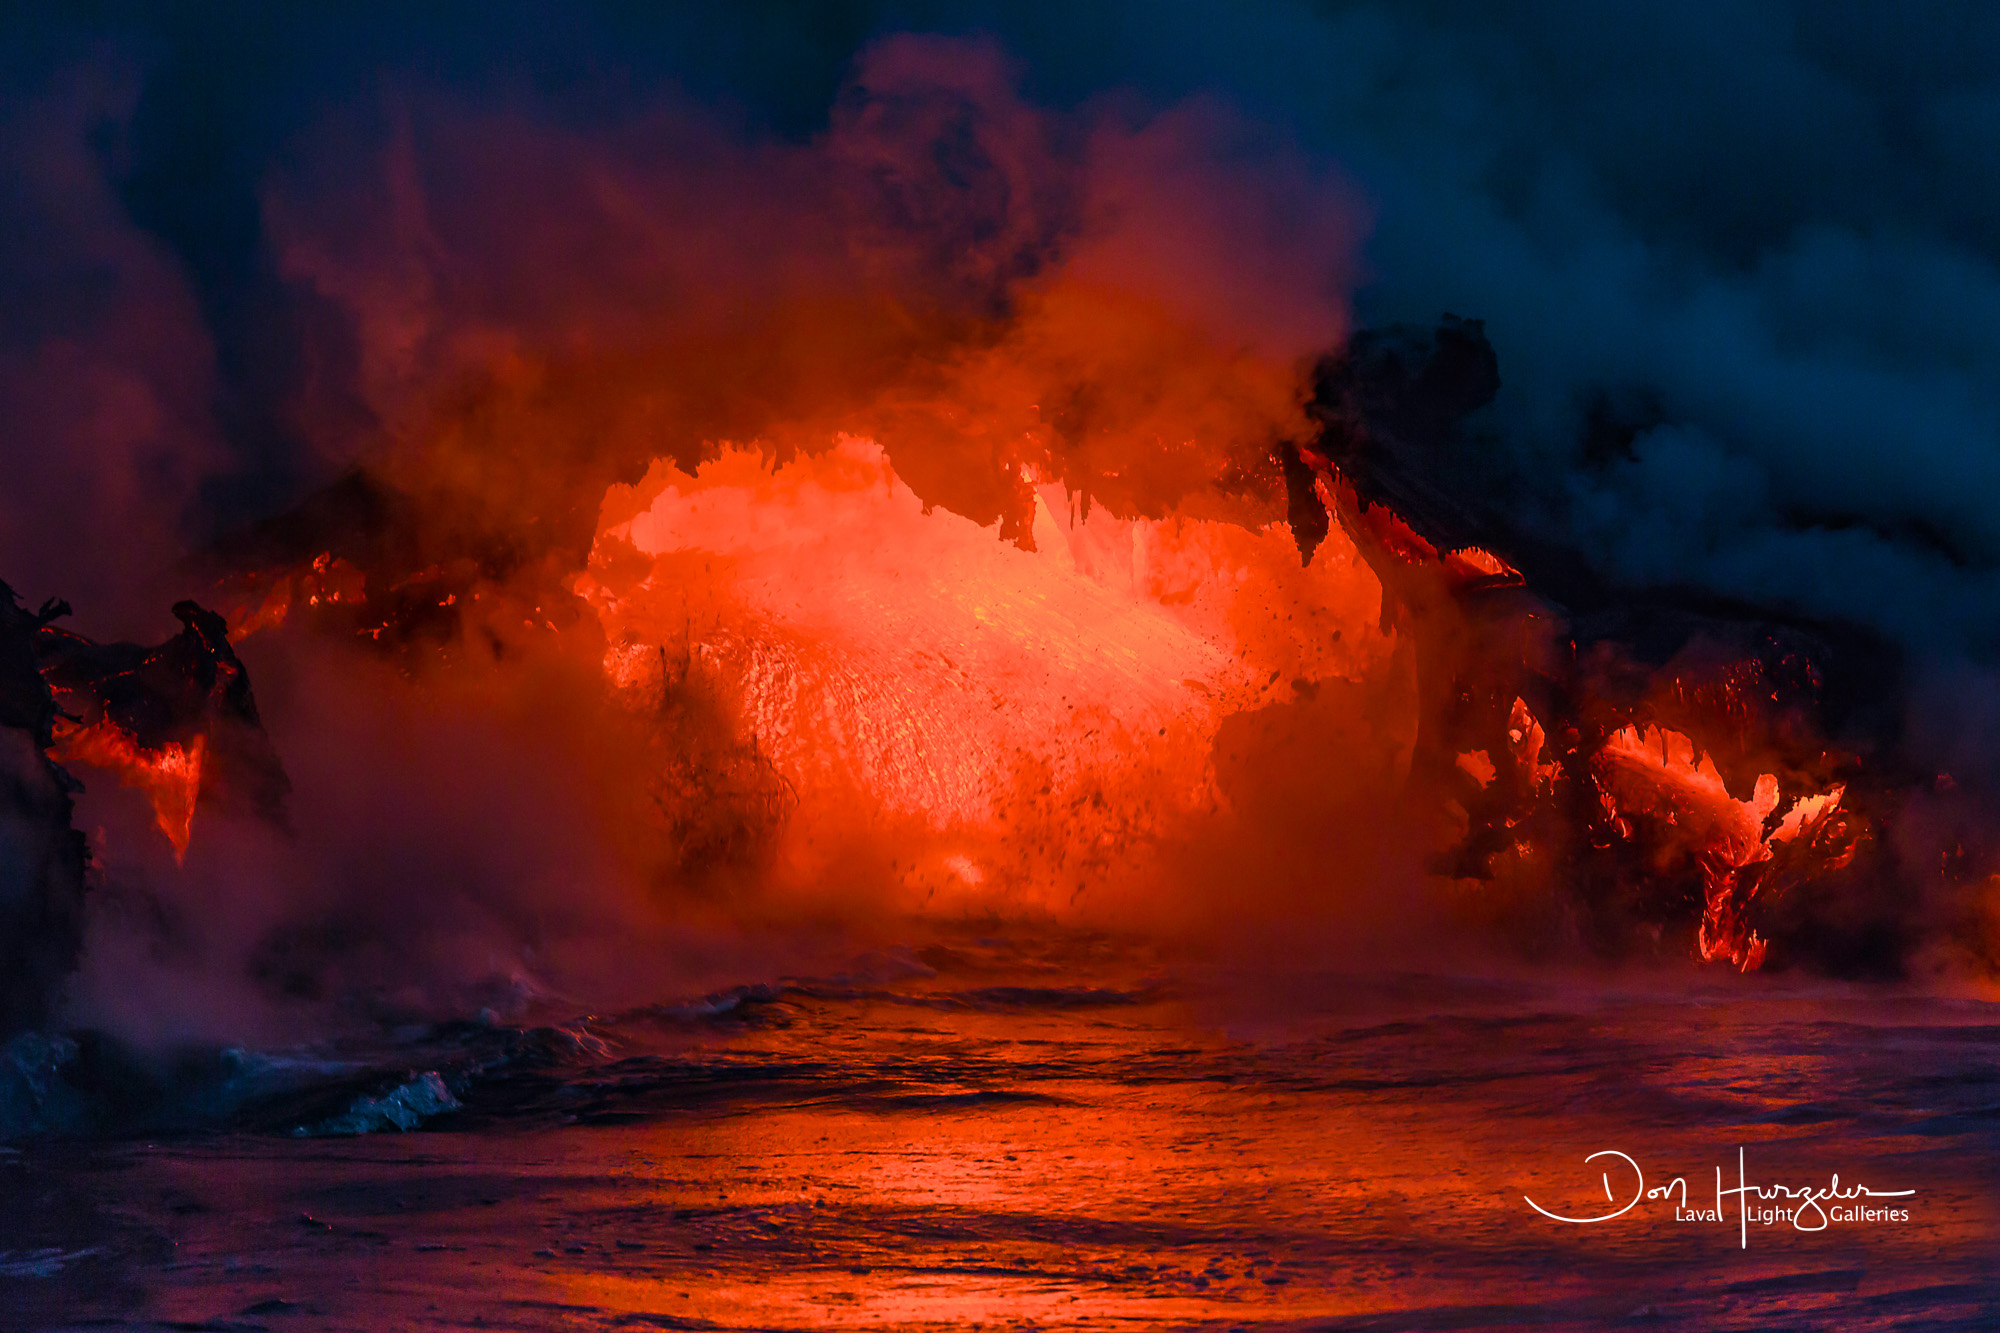 A massive amount of lava pouring from a lava tube directly into the sea.